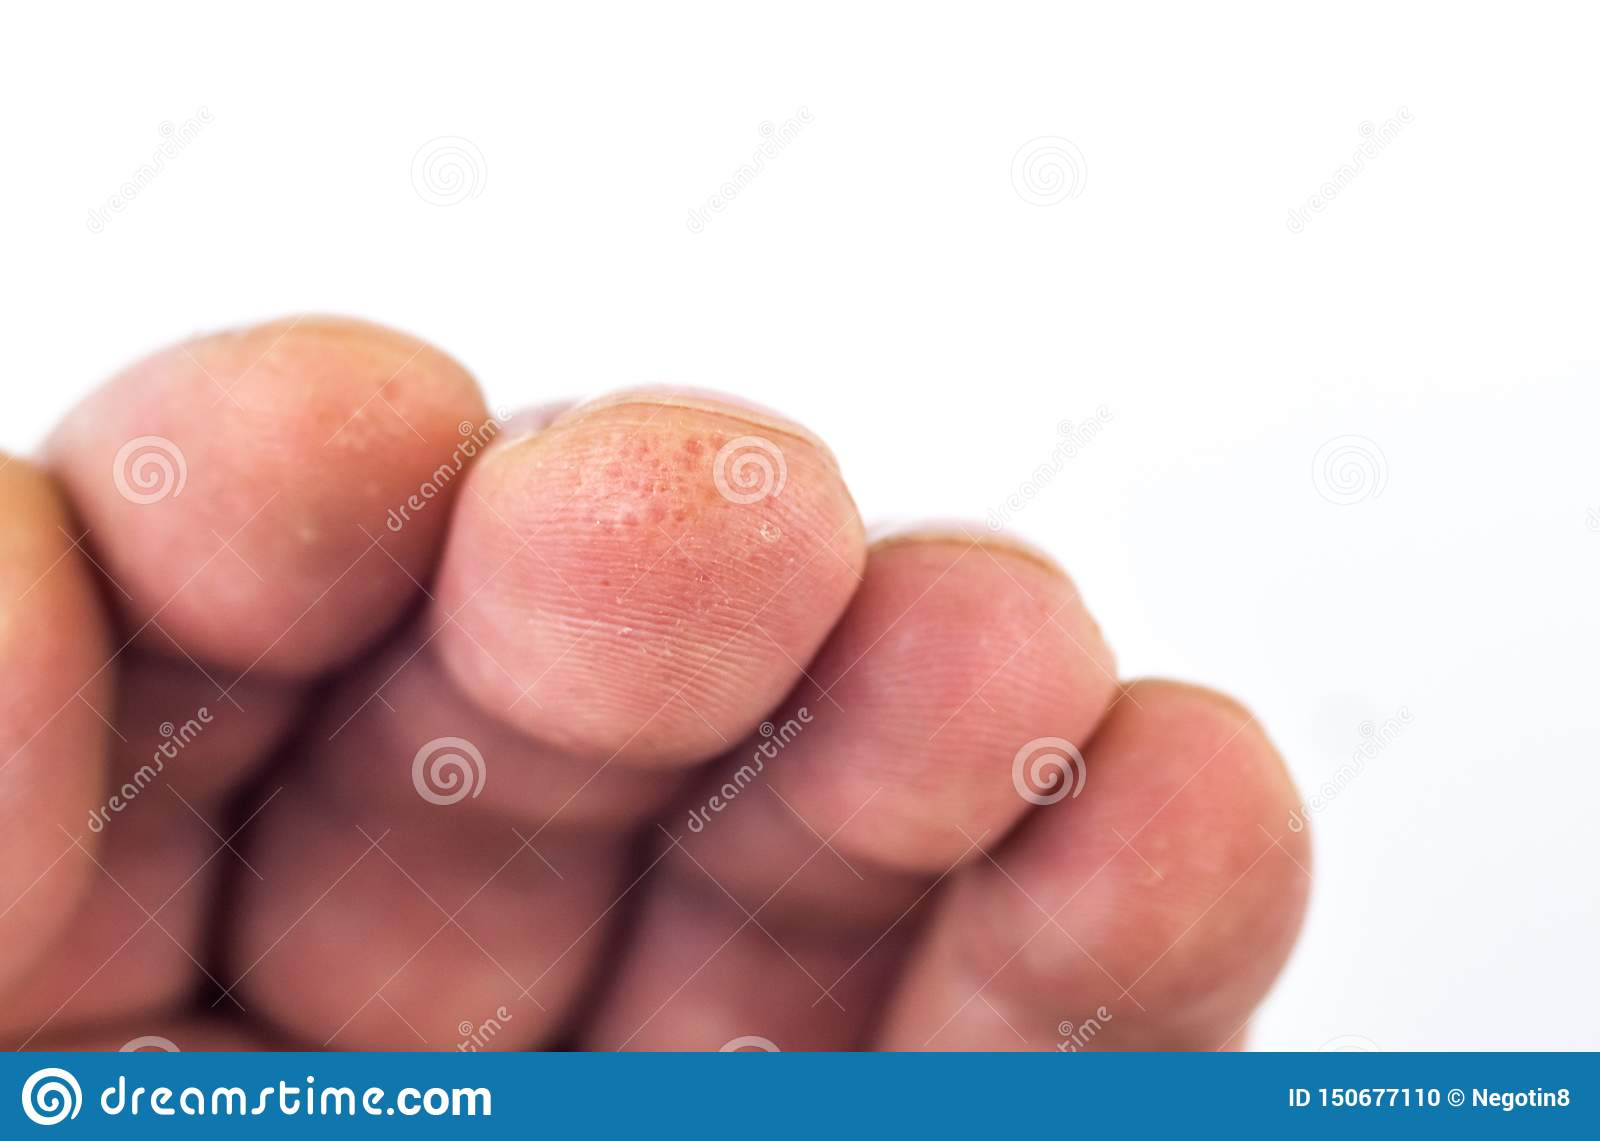 Advanced Stage Of Dyshidrosis On Fingers,cracked And ...